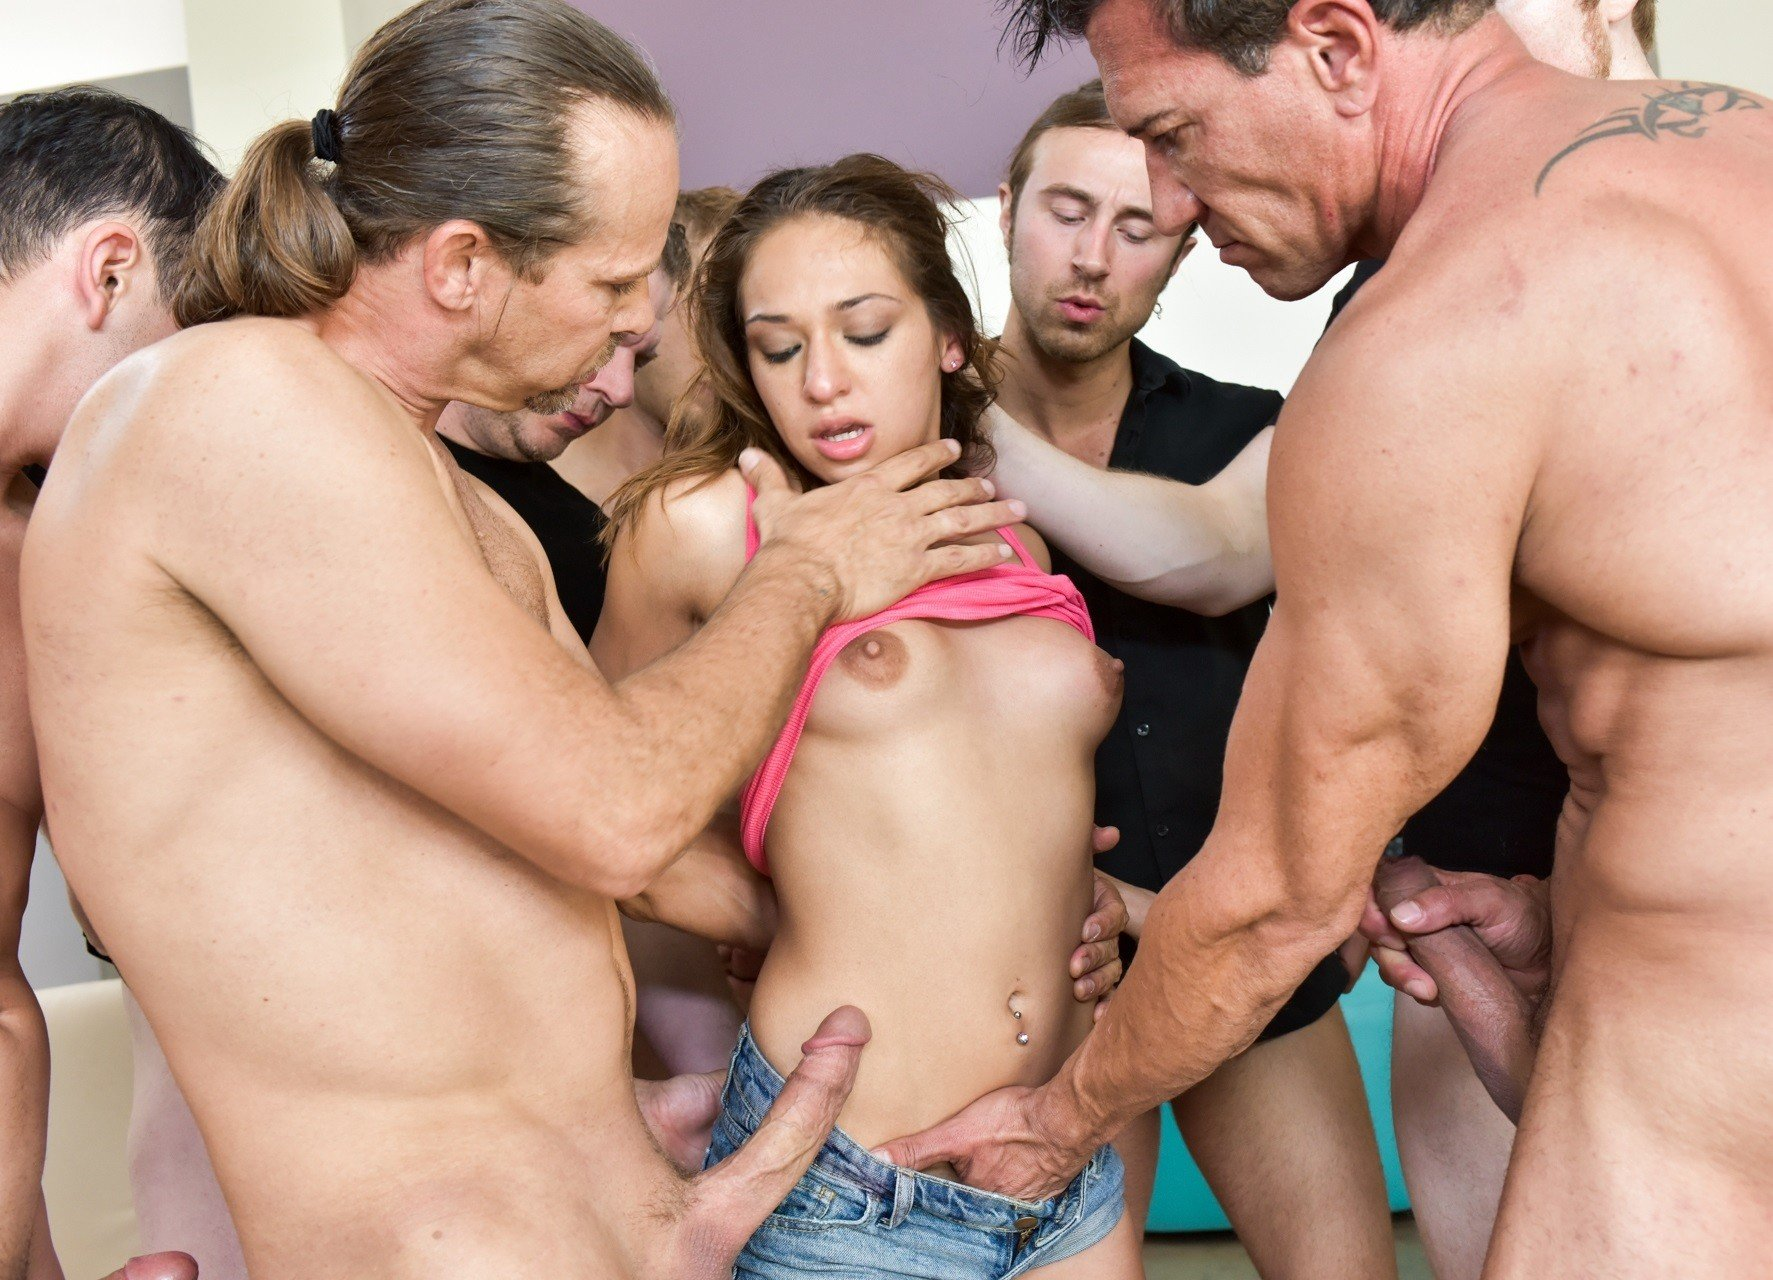 Family group sex party #1